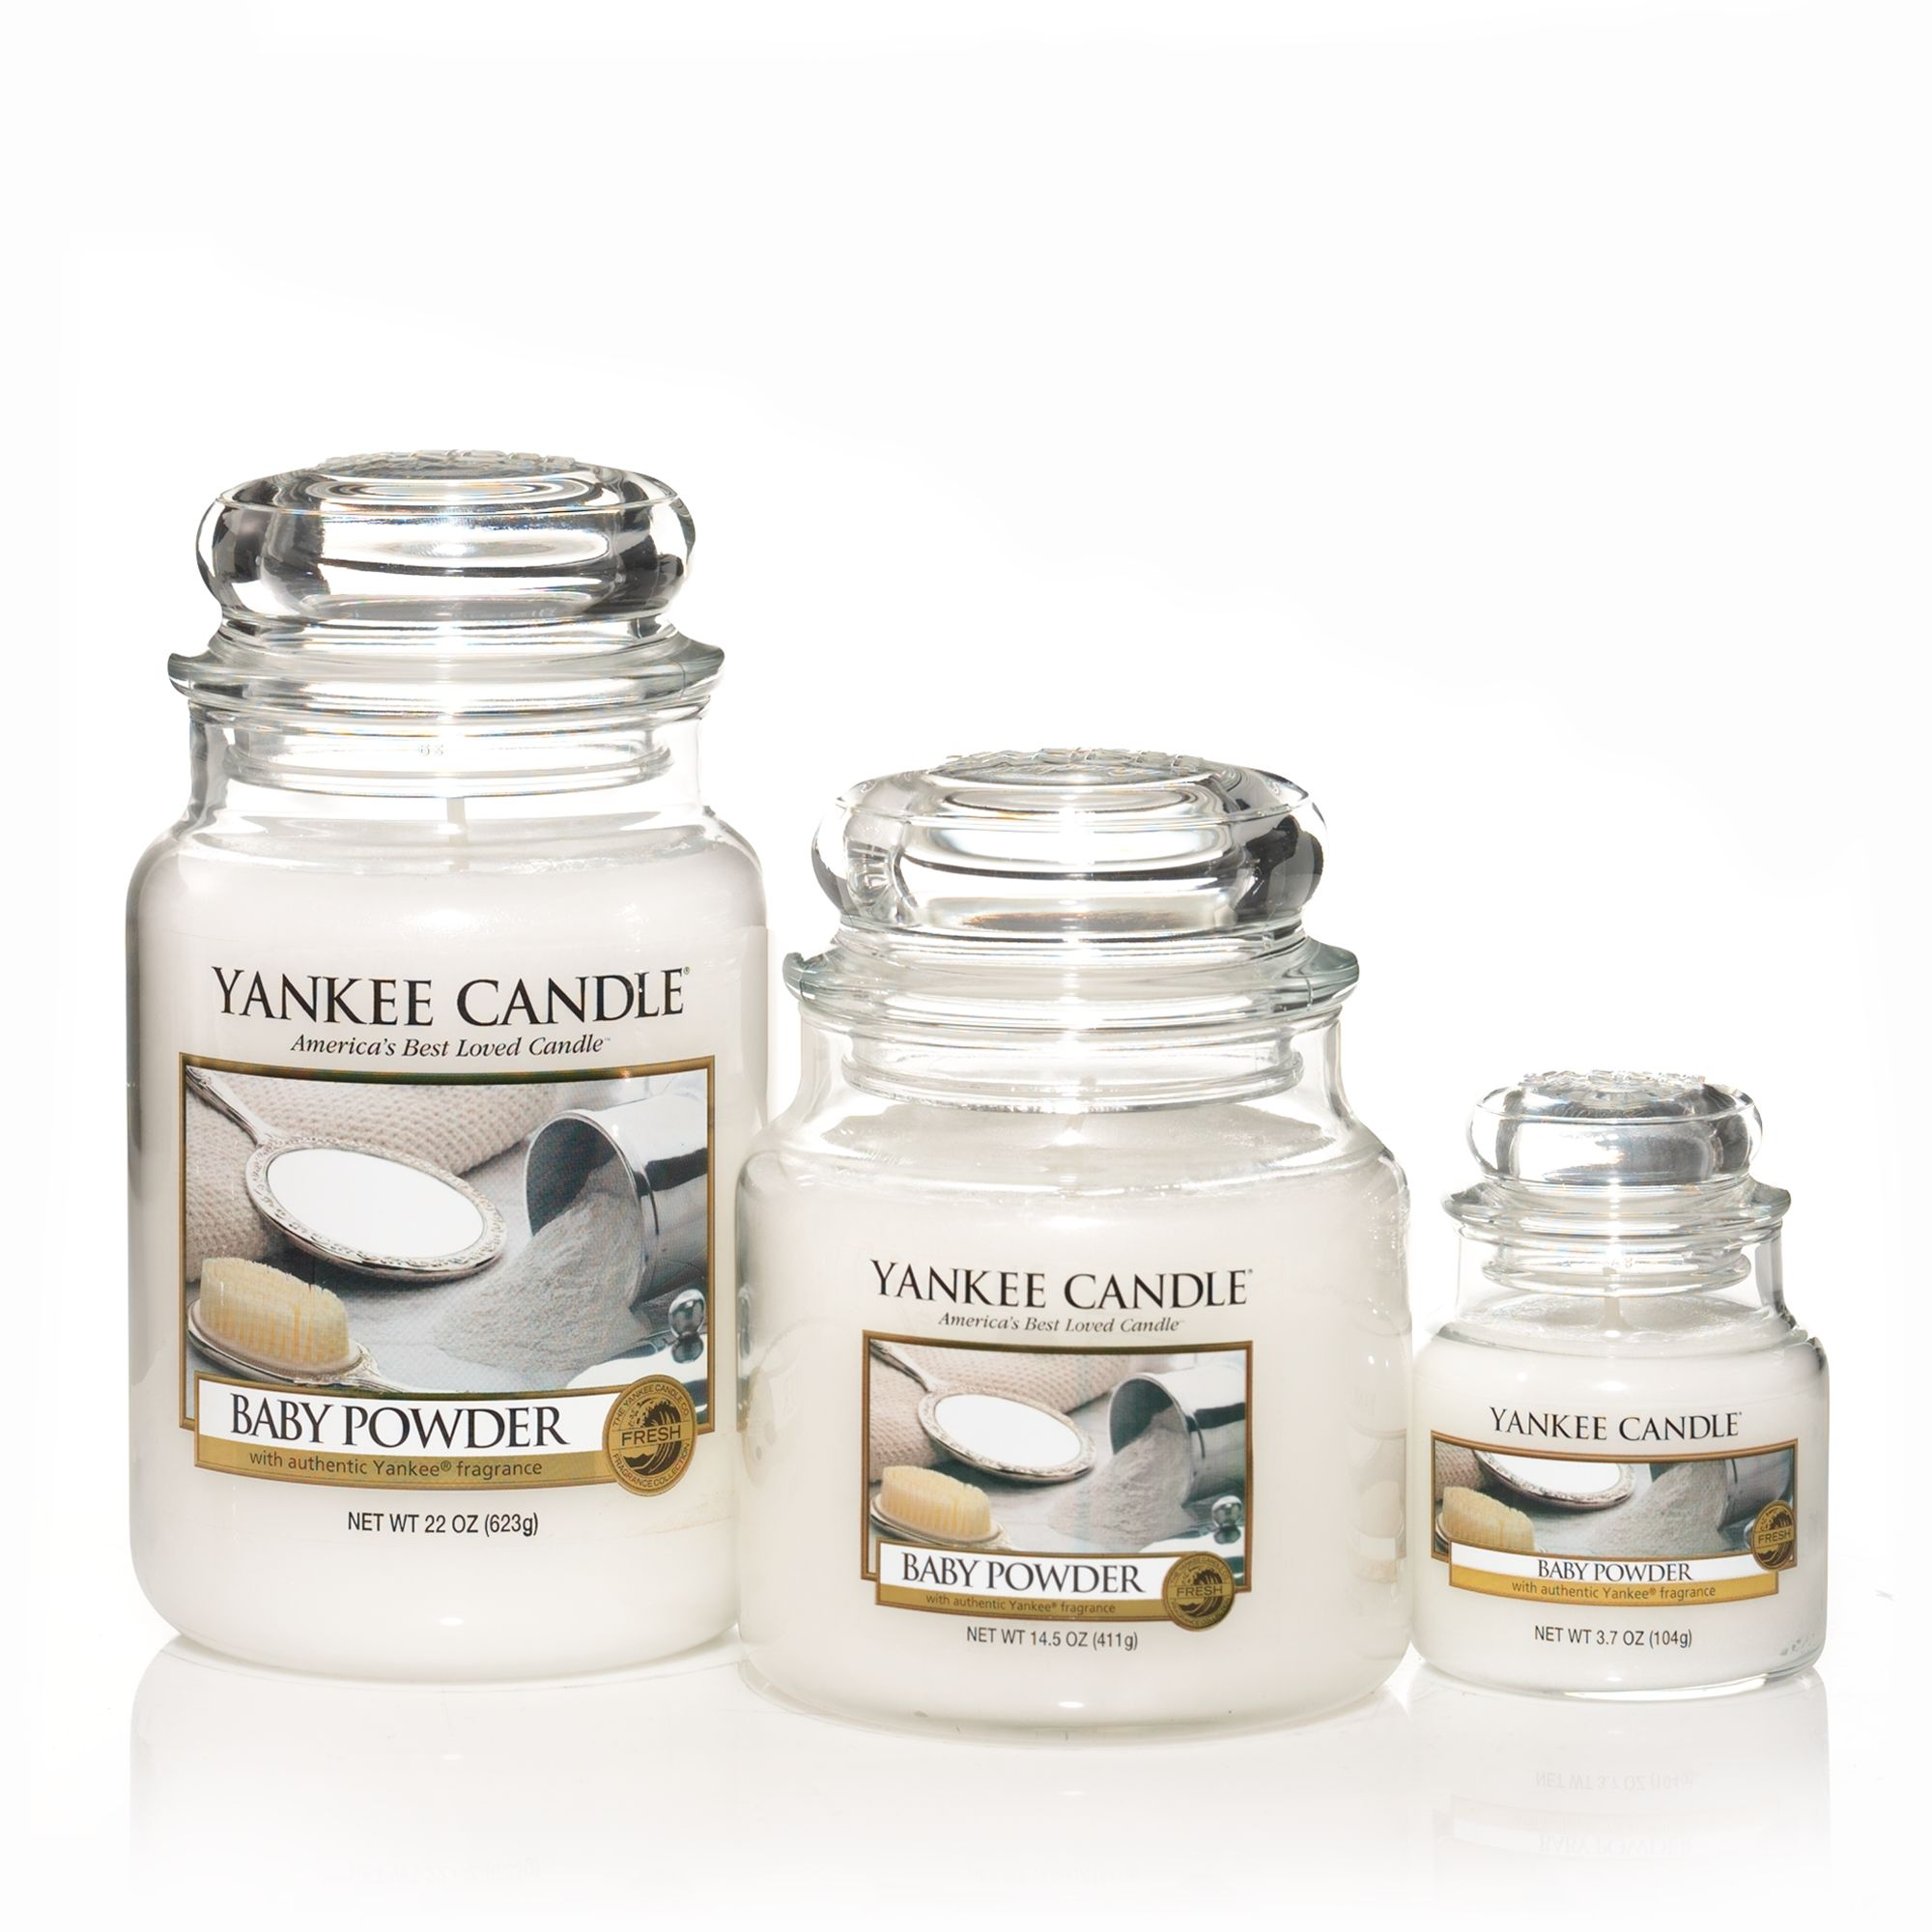 Baby powder scented candles